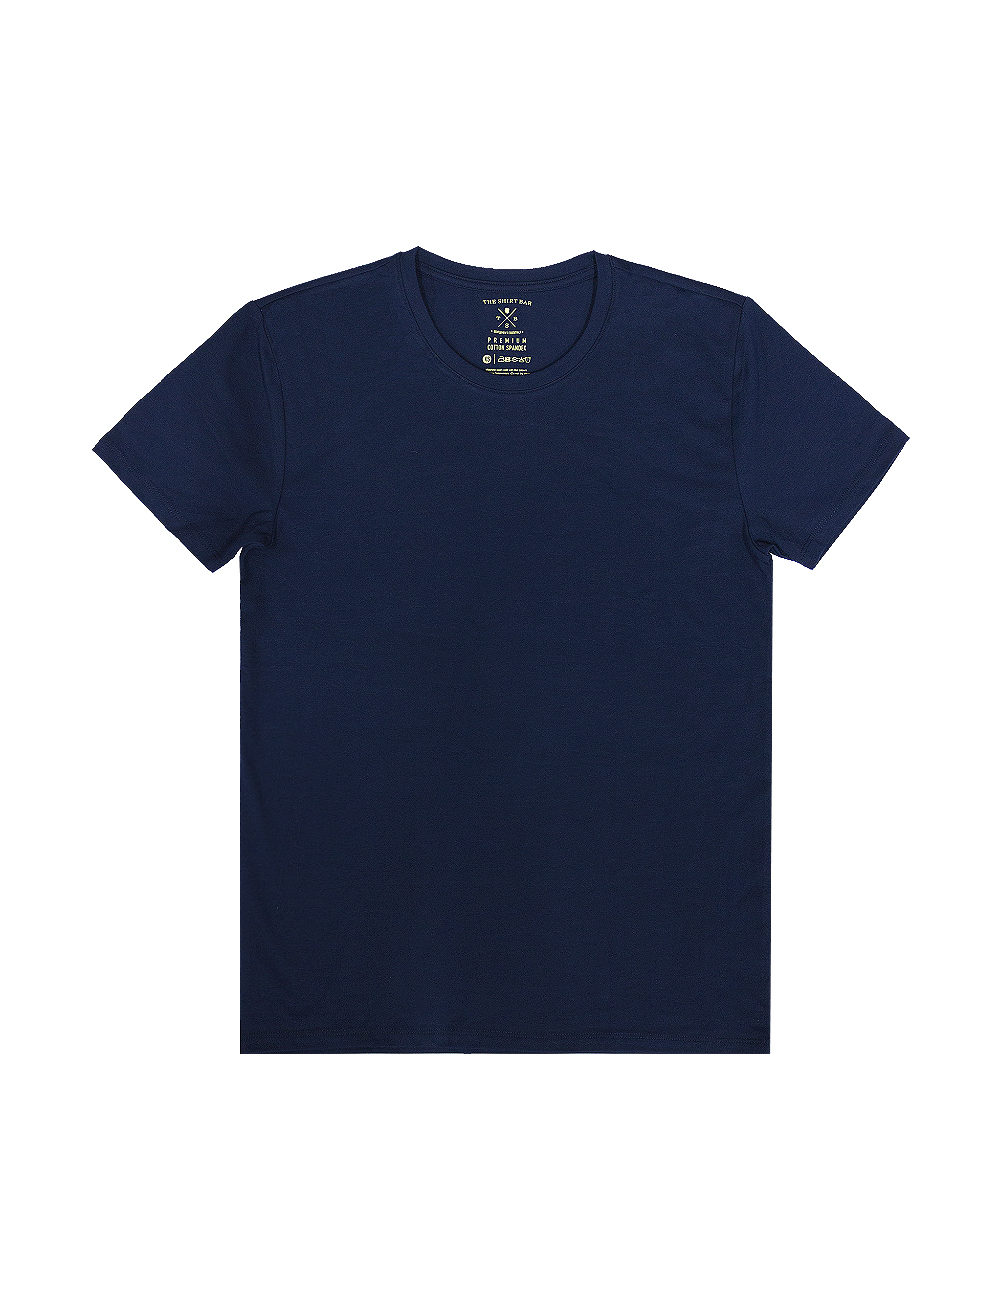 Slim Fit Navy Premium Cotton Stretch Short Sleeves Crew Neck T-shirt TS1A3.1